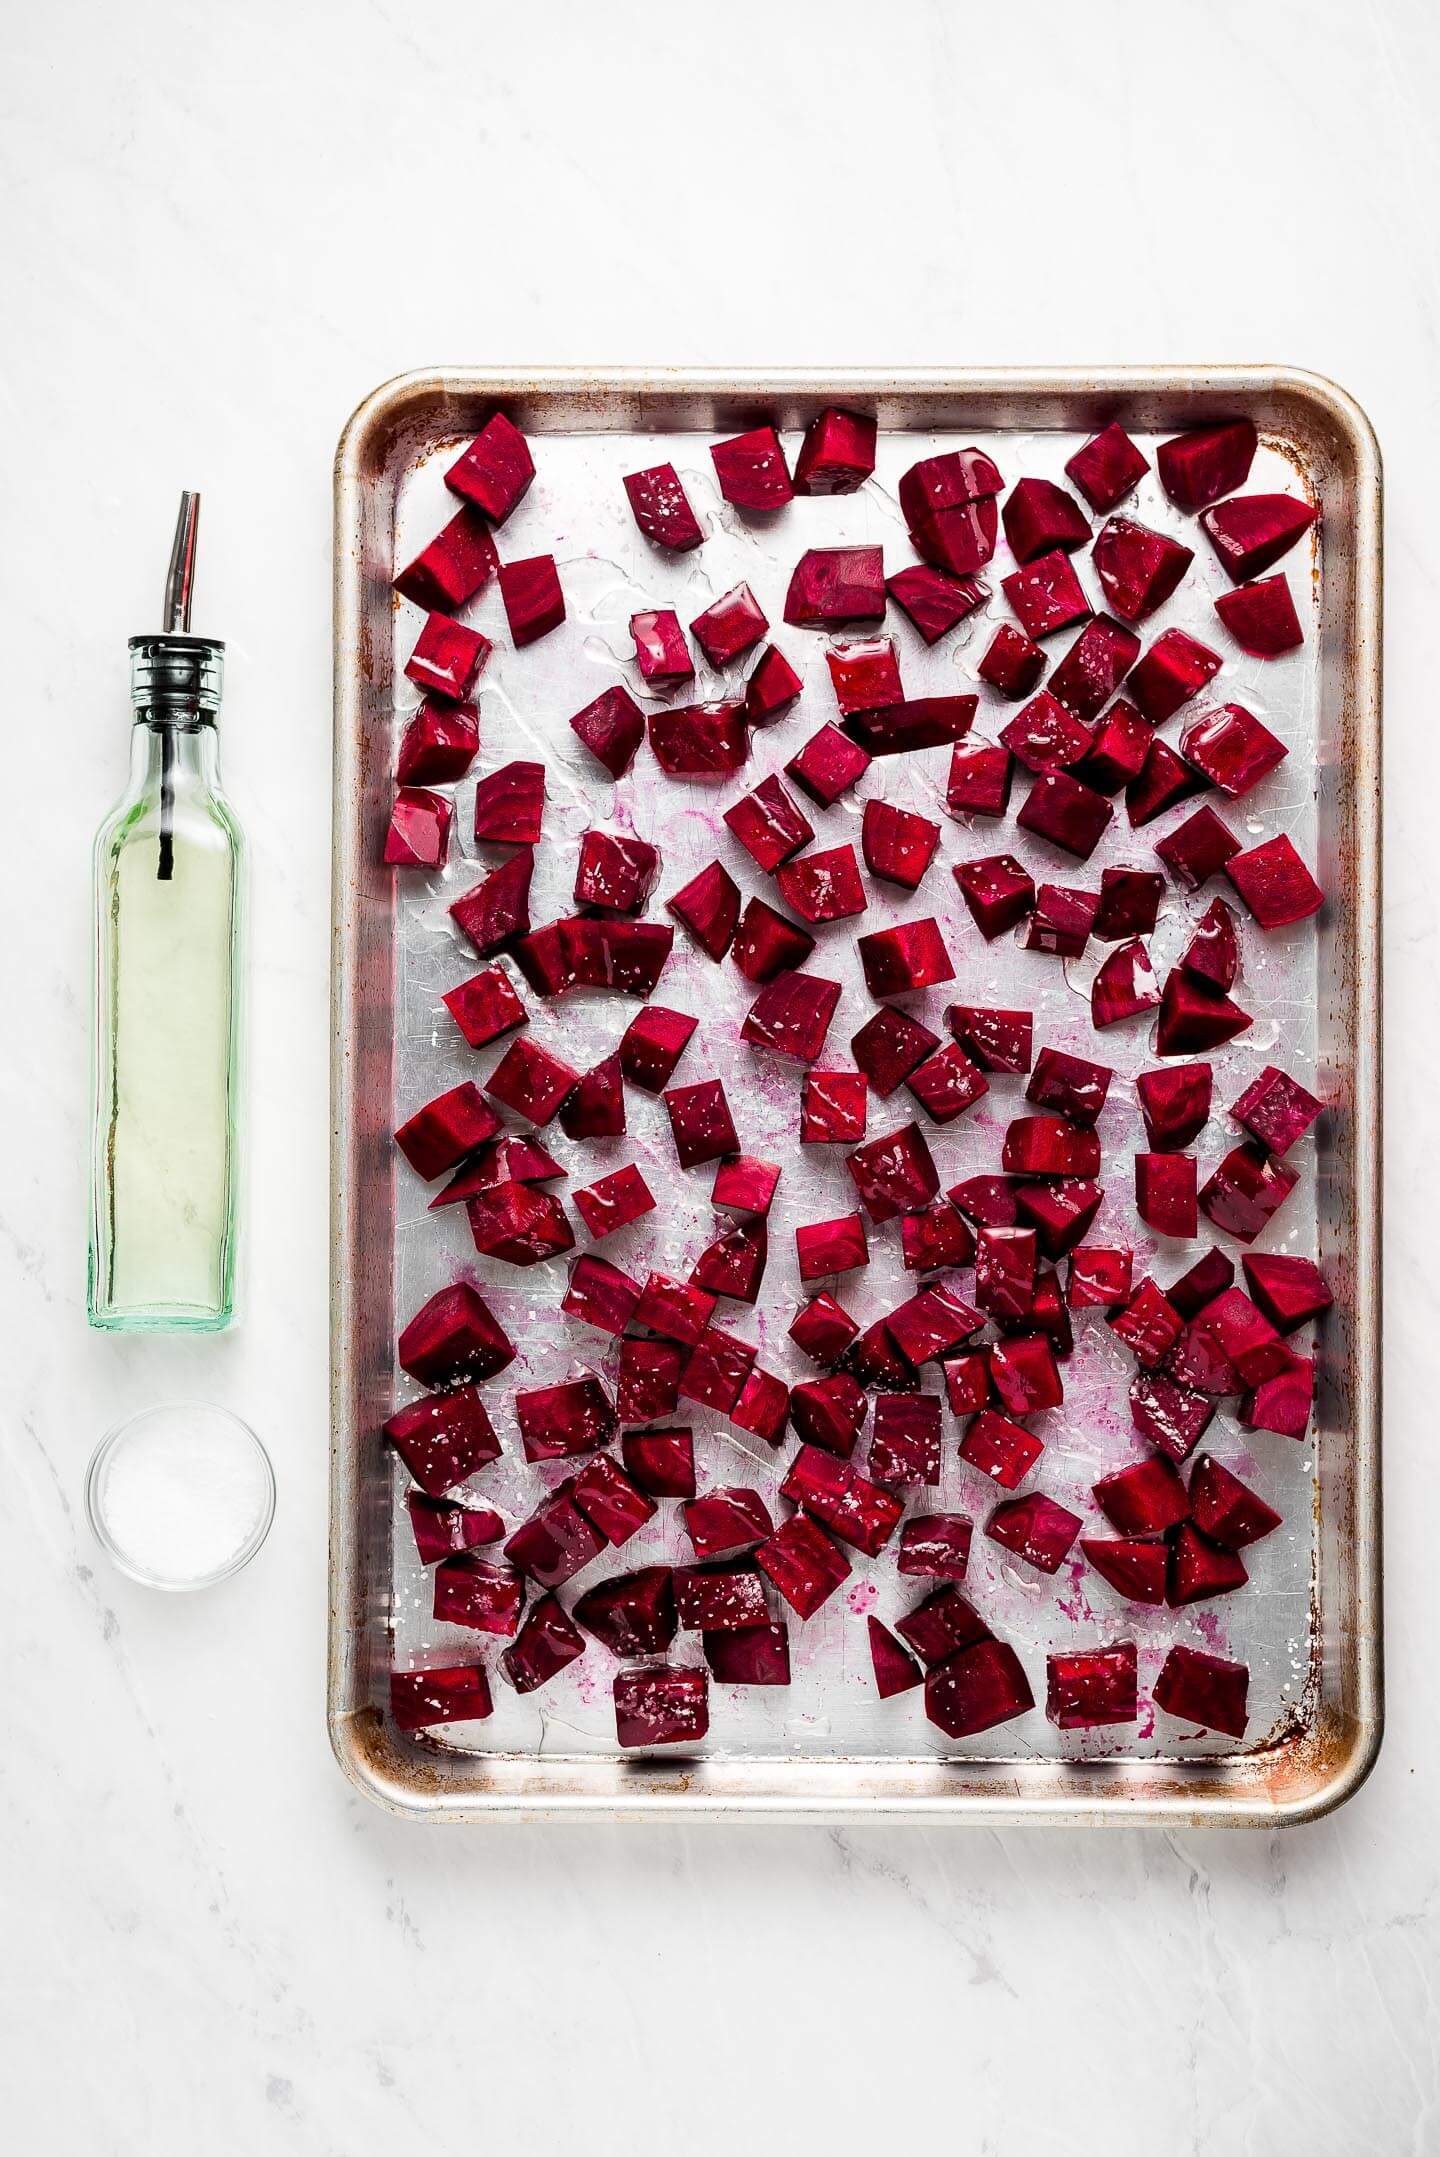 A baking sheet with raw diced beets drizzled with olive oil and sprinkled with kosher salt; a bottle of oil and bowl of salt to the side.